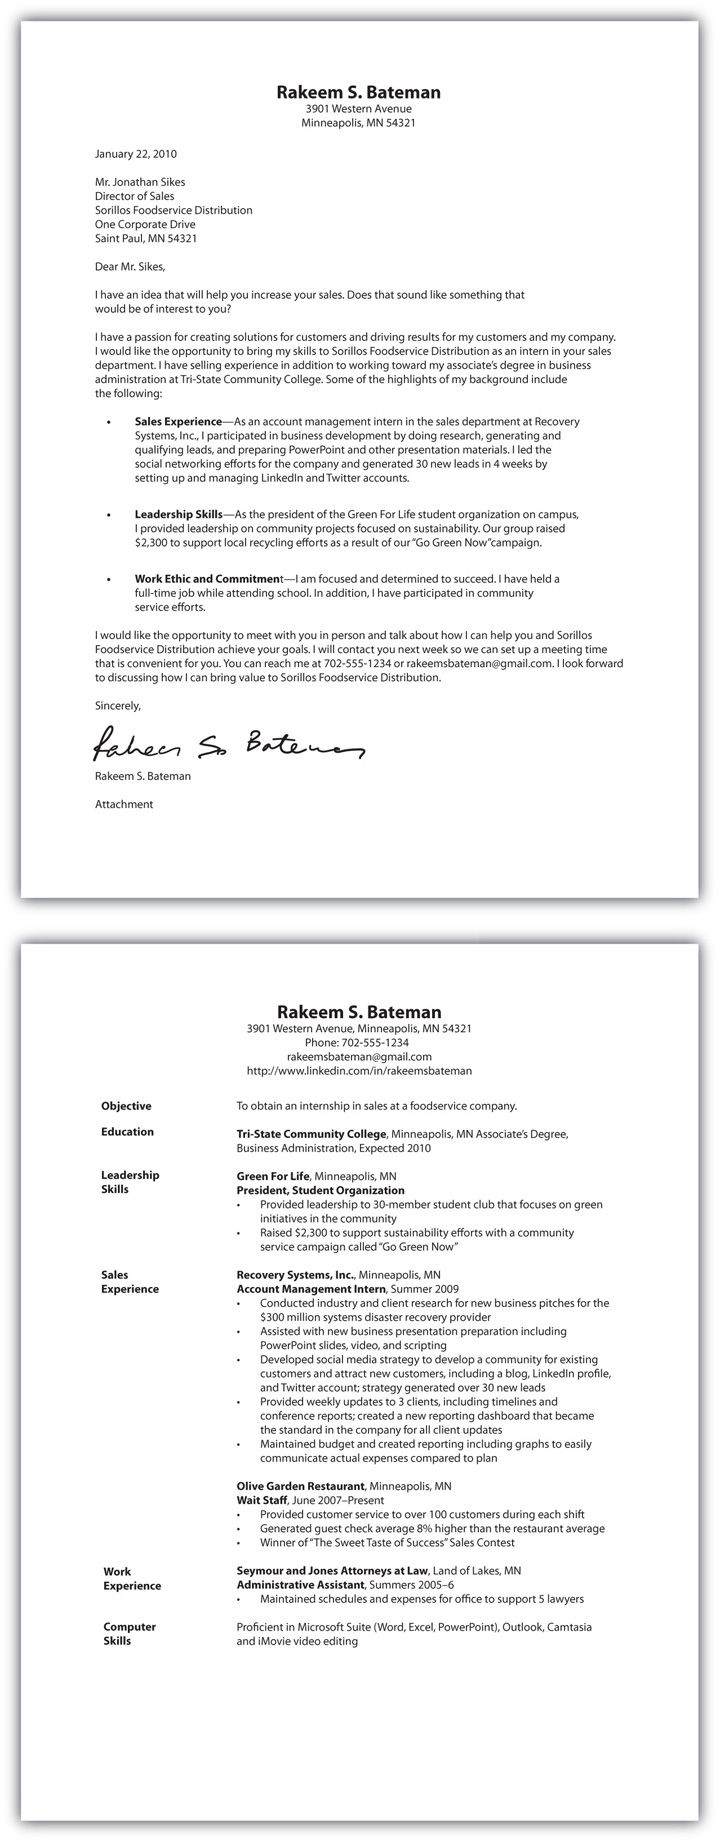 26+ Cover Letter On Resume Resume cover letter examples